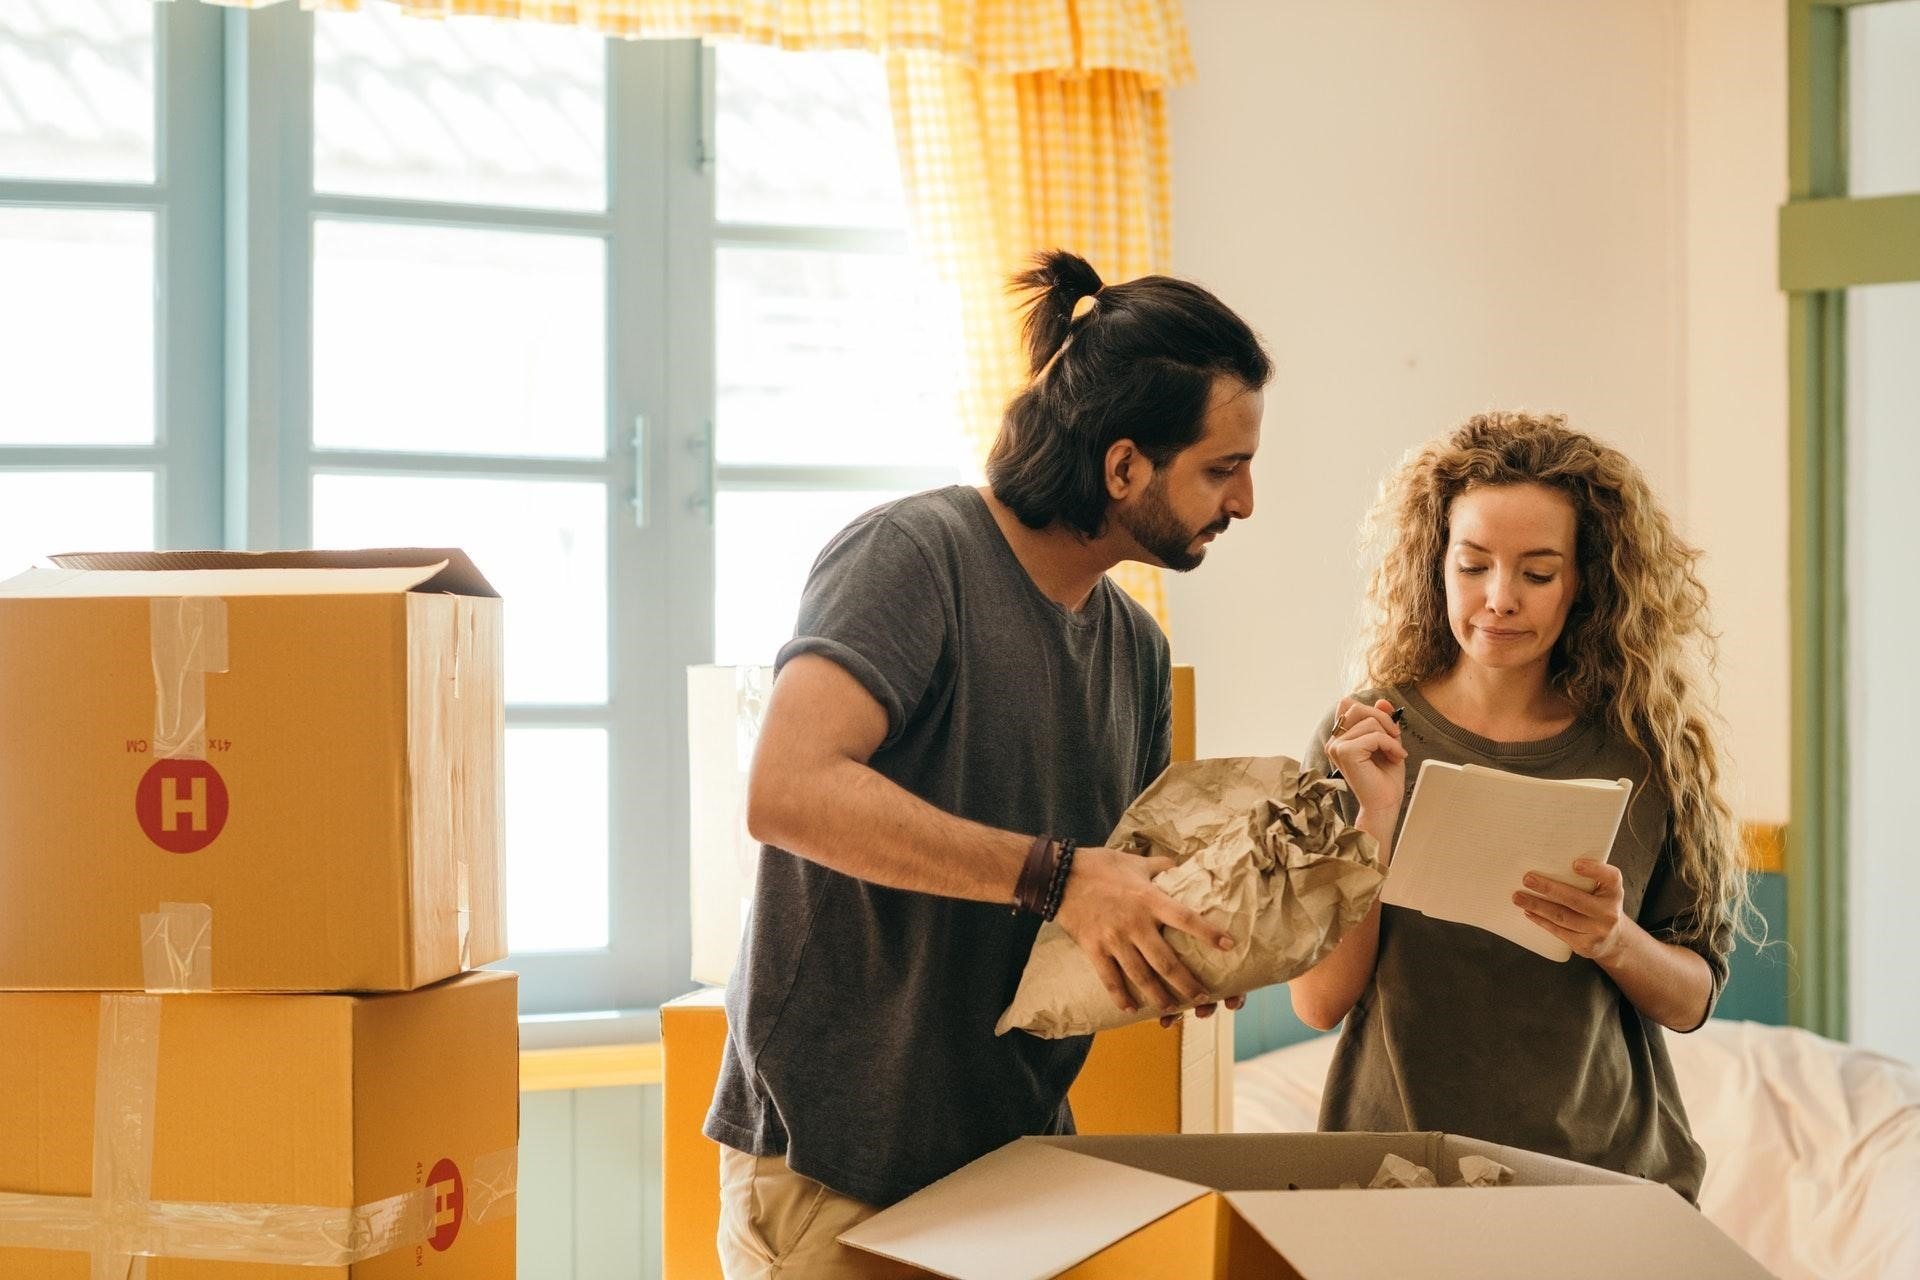 moving out of home checklist - preparation is key